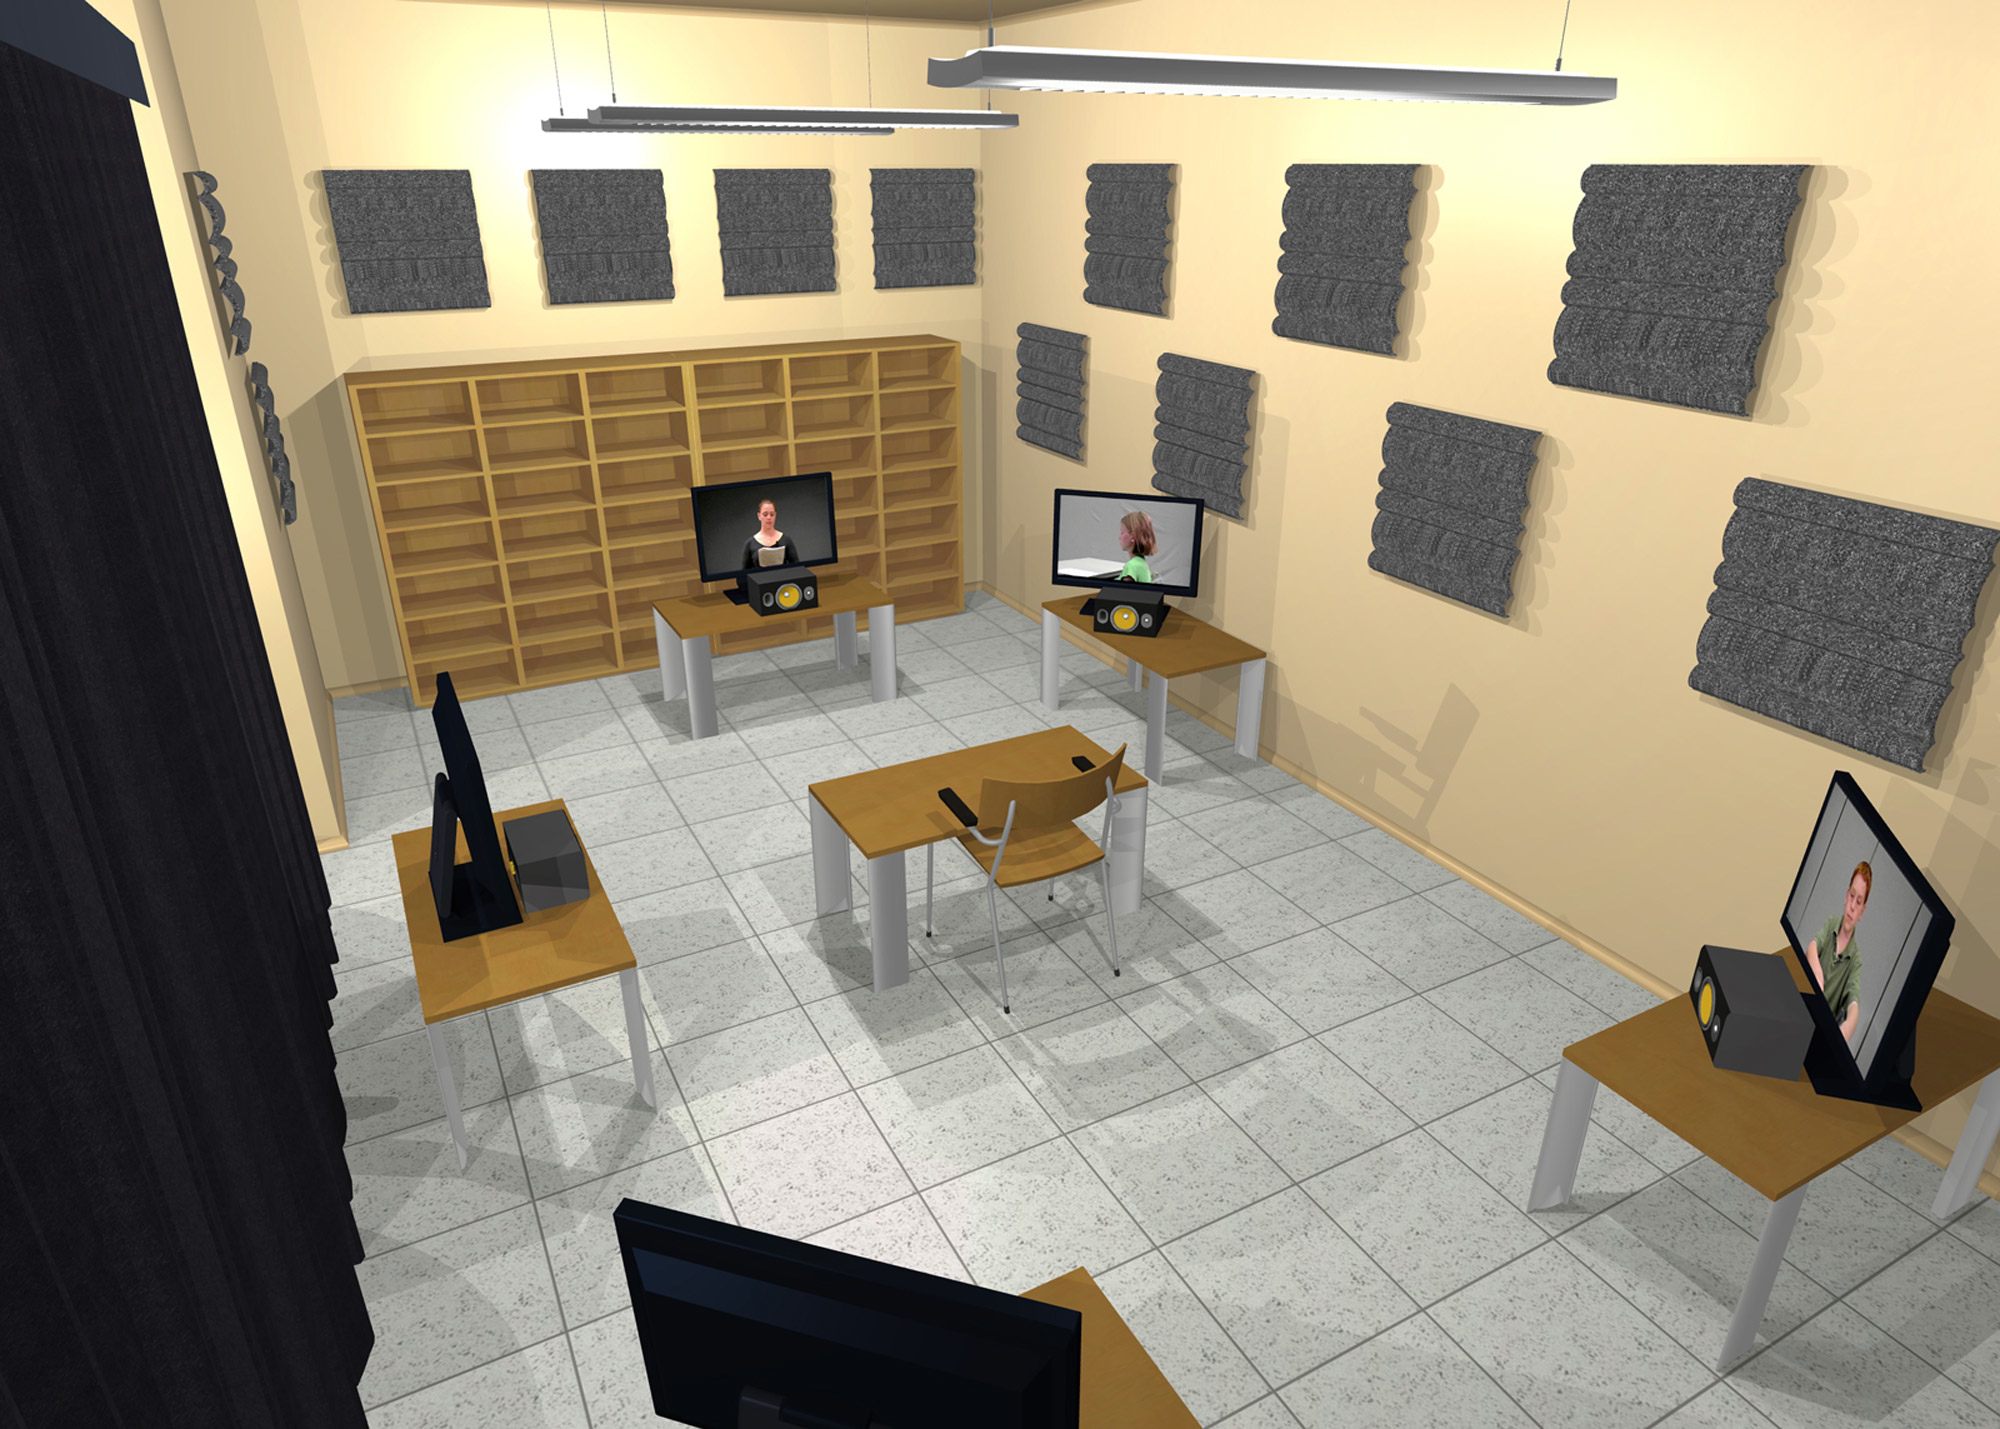 Classroom Acoustic Design : Acoustical society of america st lay language papers